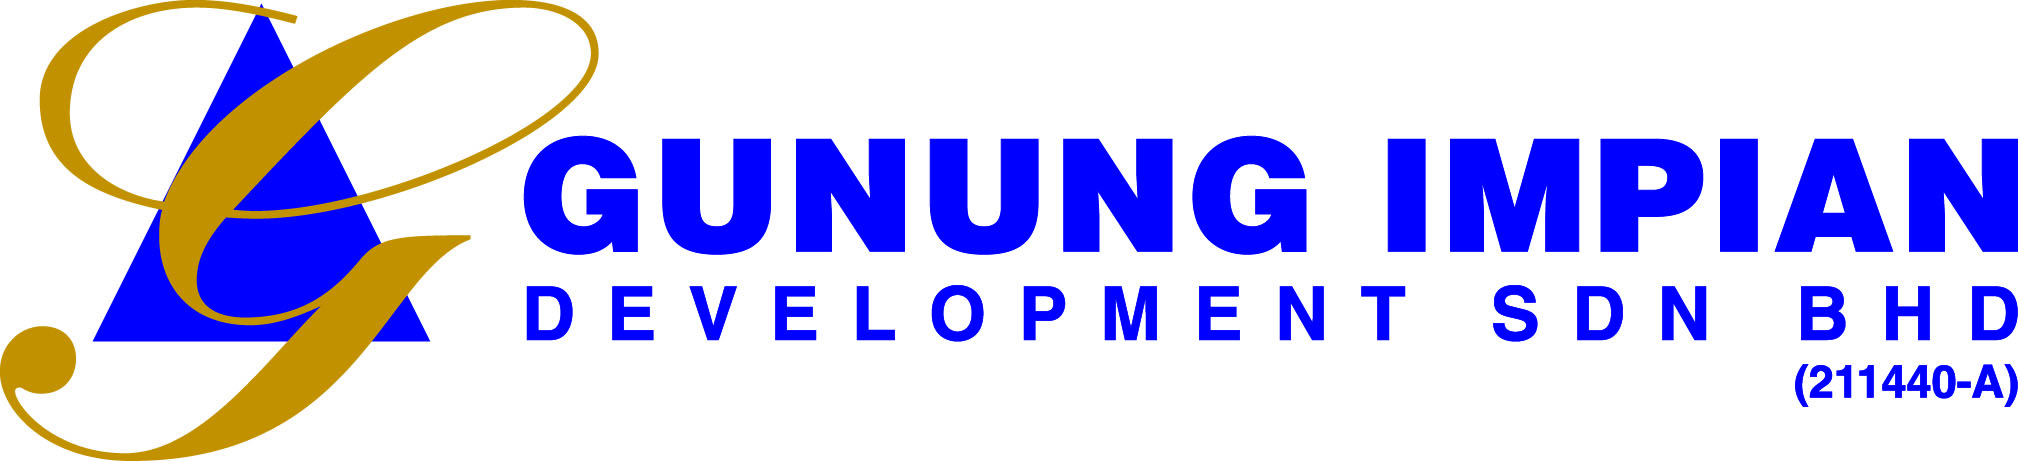 Gunung Impian Development